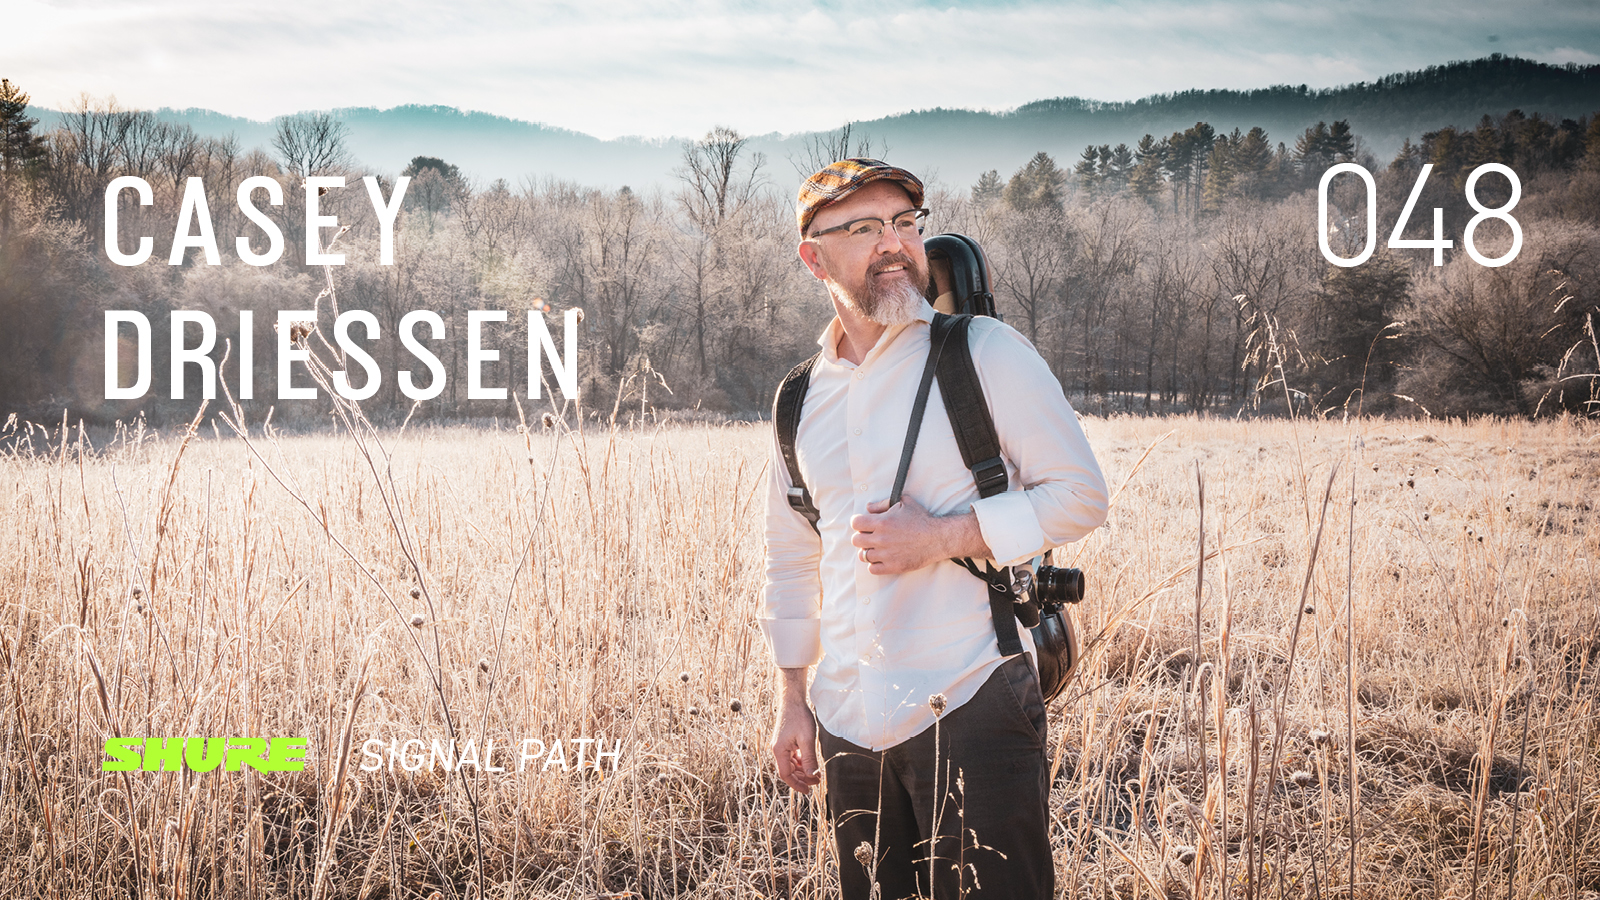 Casey Driessen in a field